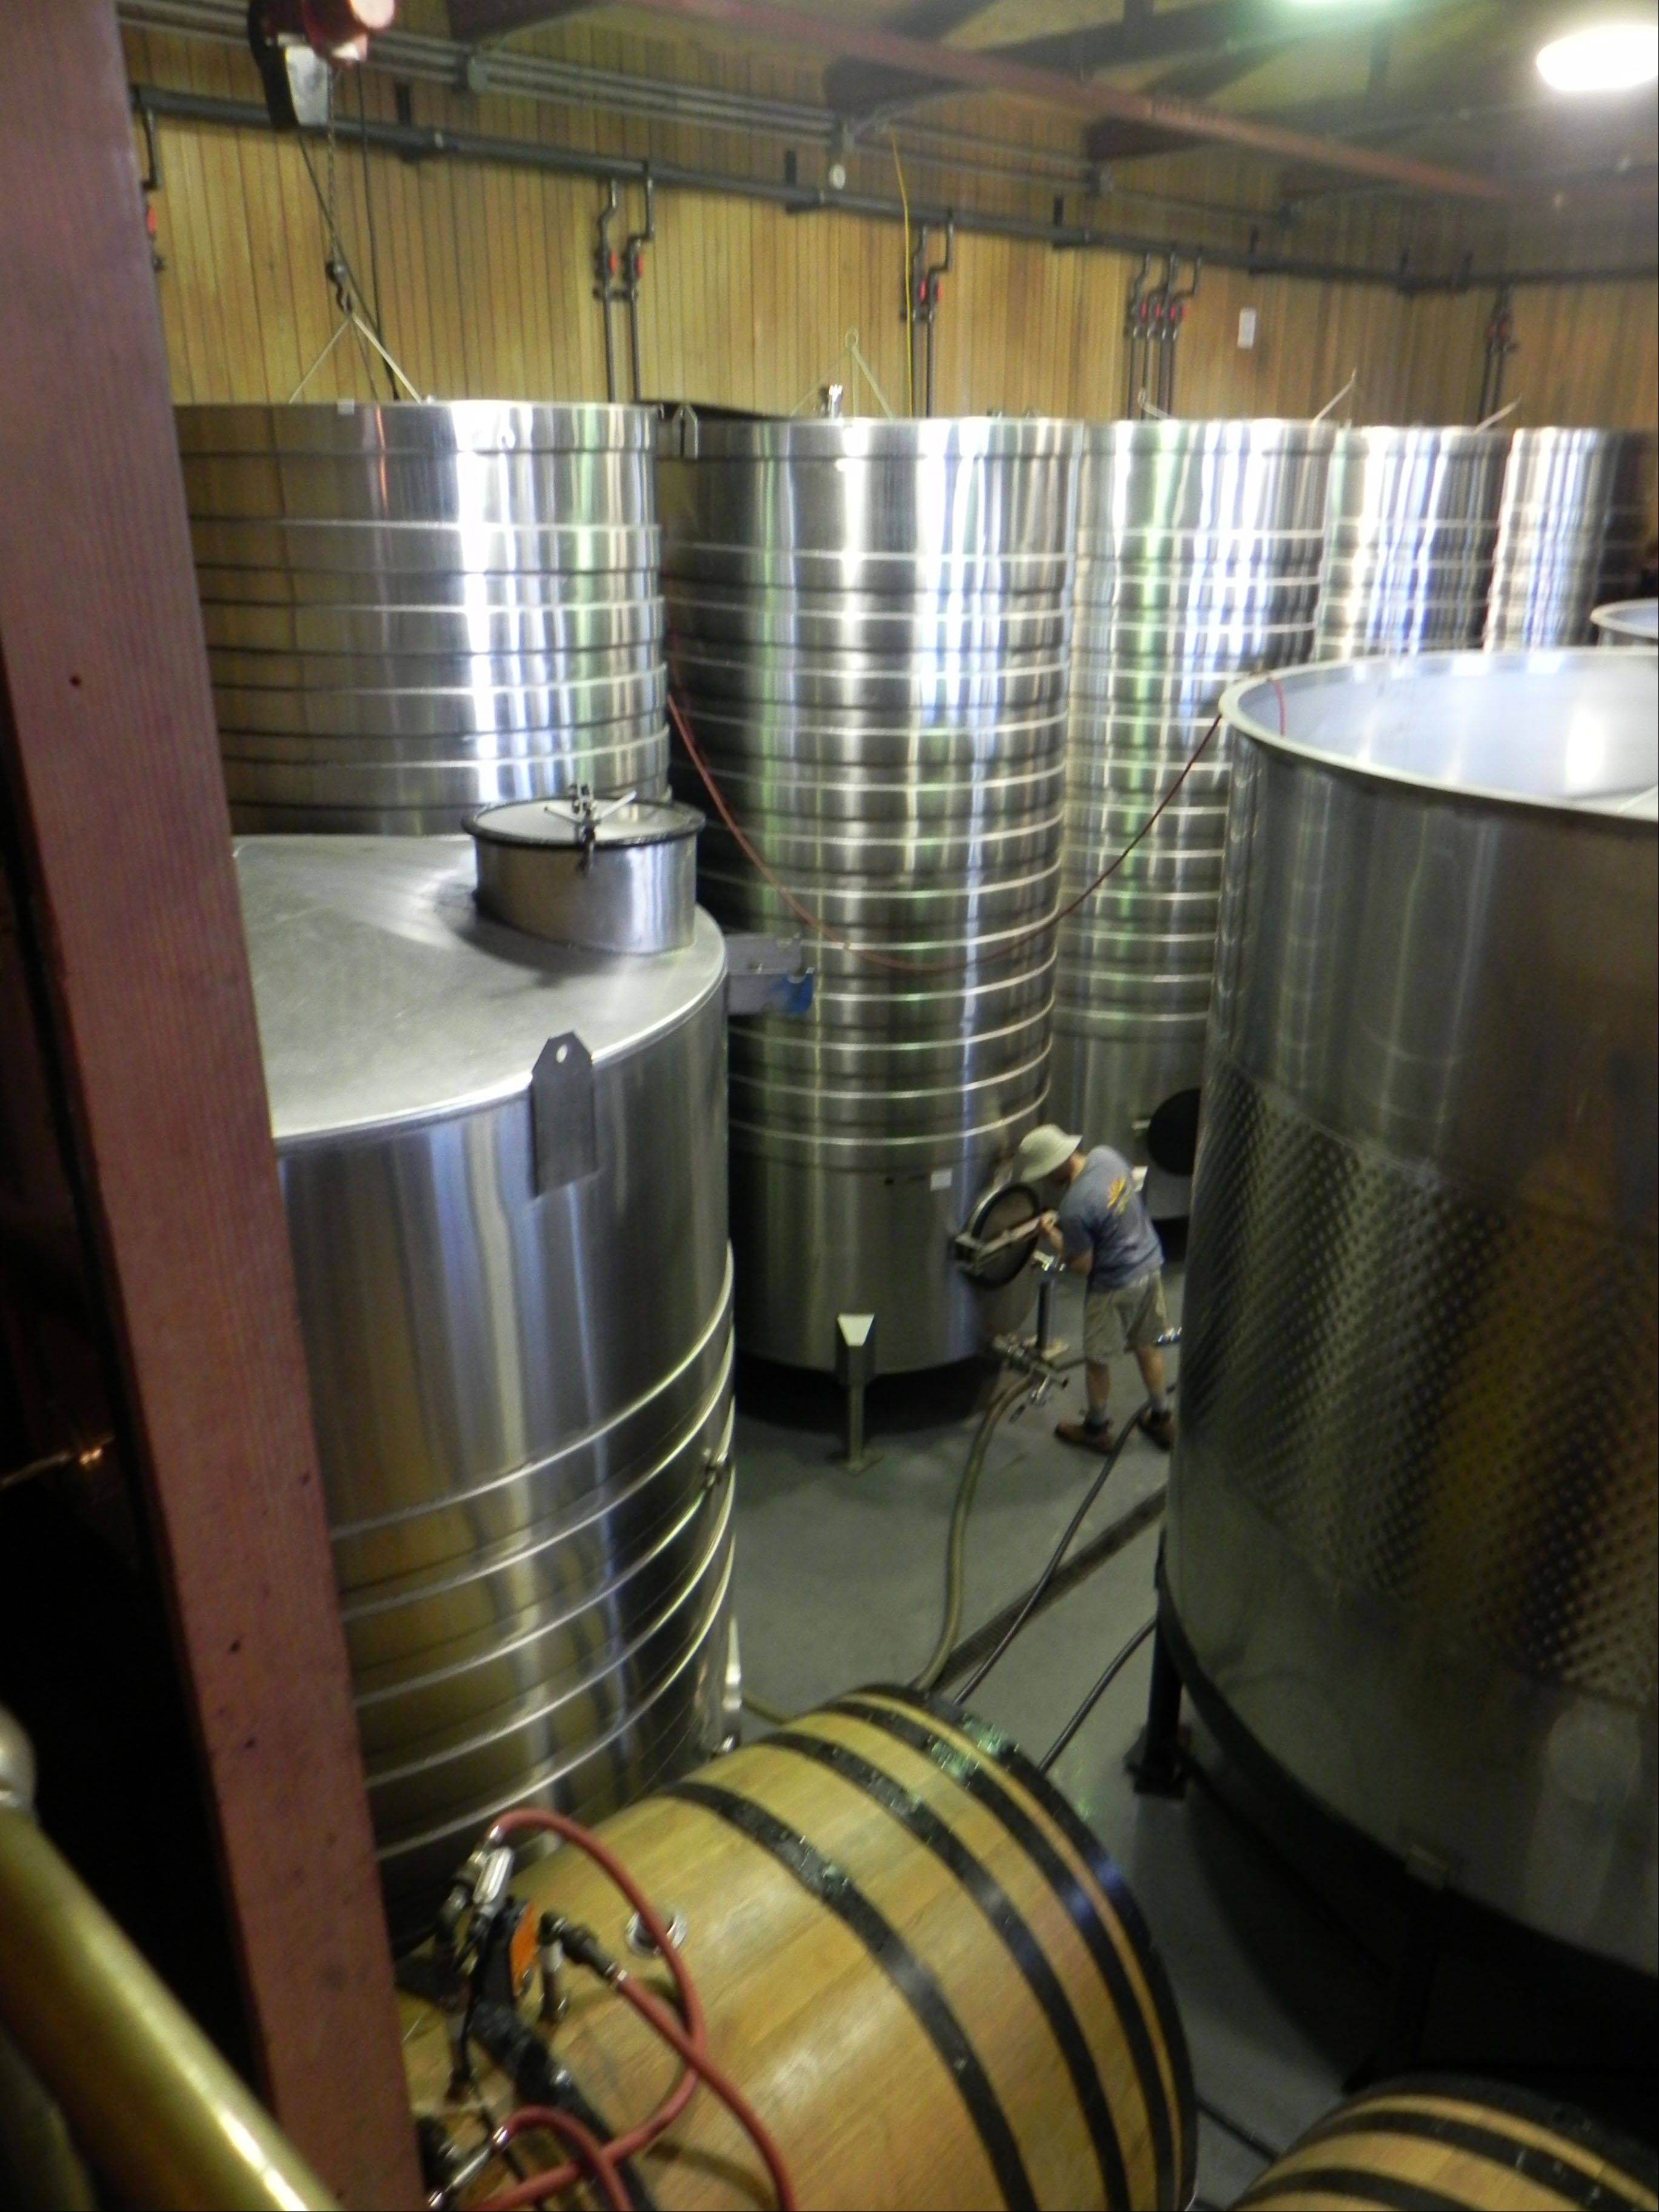 Fermenting vats await the 2012 harvest at Rex Hill winery near Newberg, Ore.